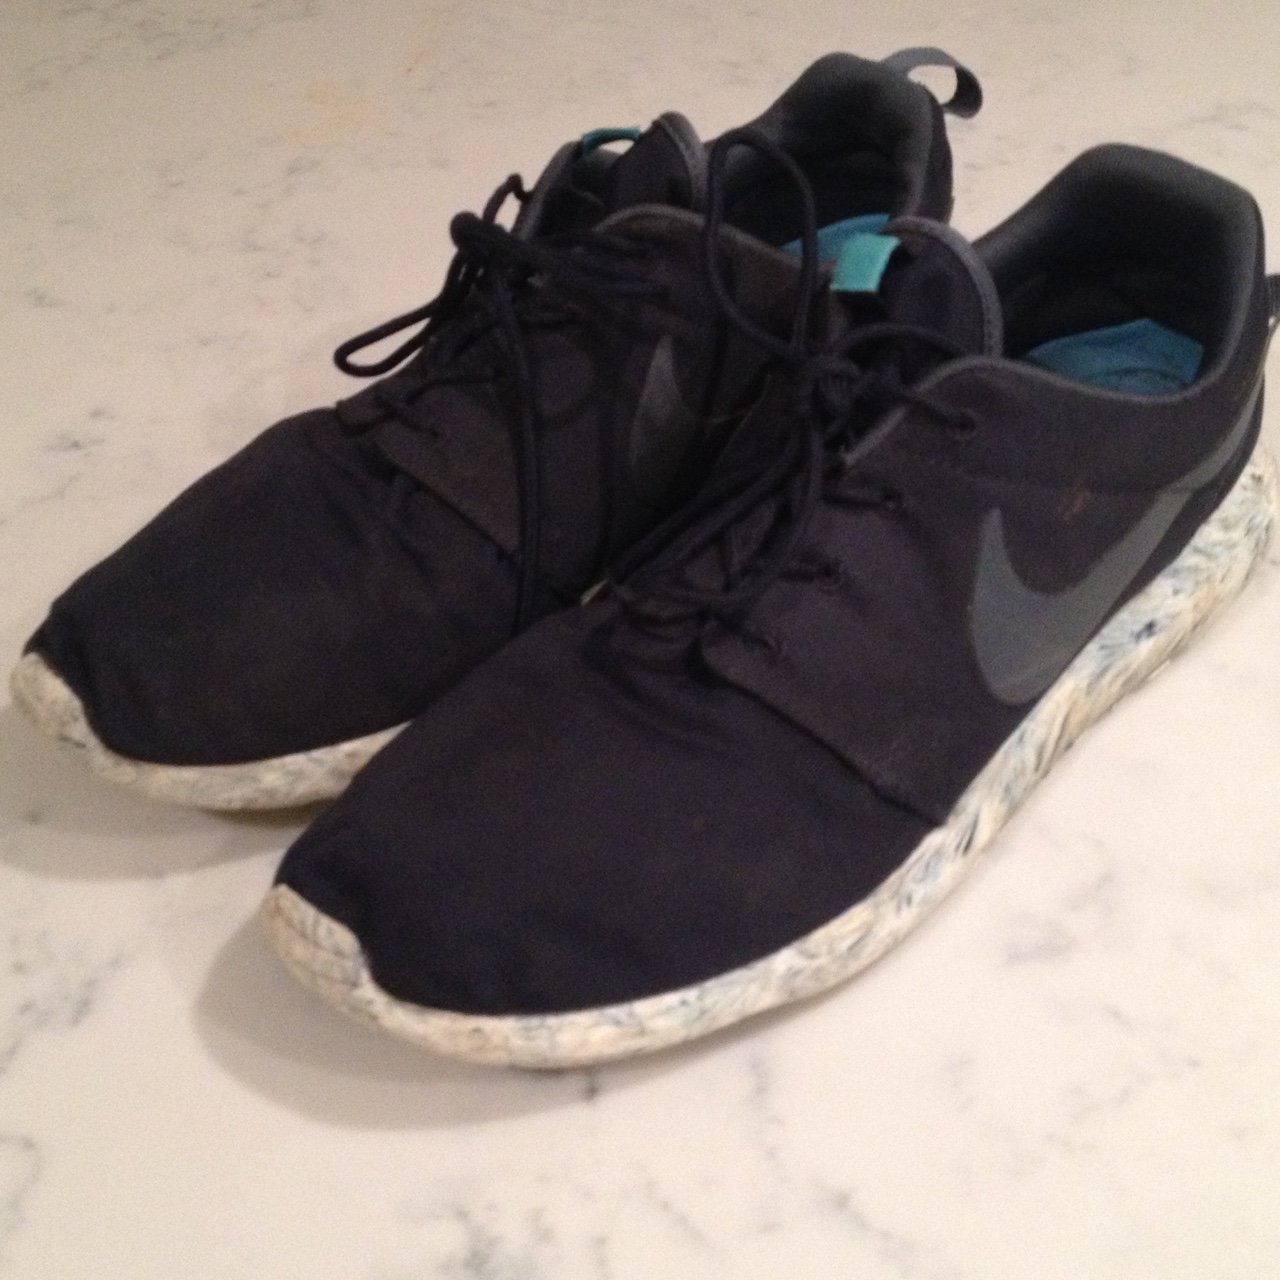 check out d0038 bfffc   armxnd. 2 years ago. Surrey, UK. Nike Roshe Run navy blue, marble ...